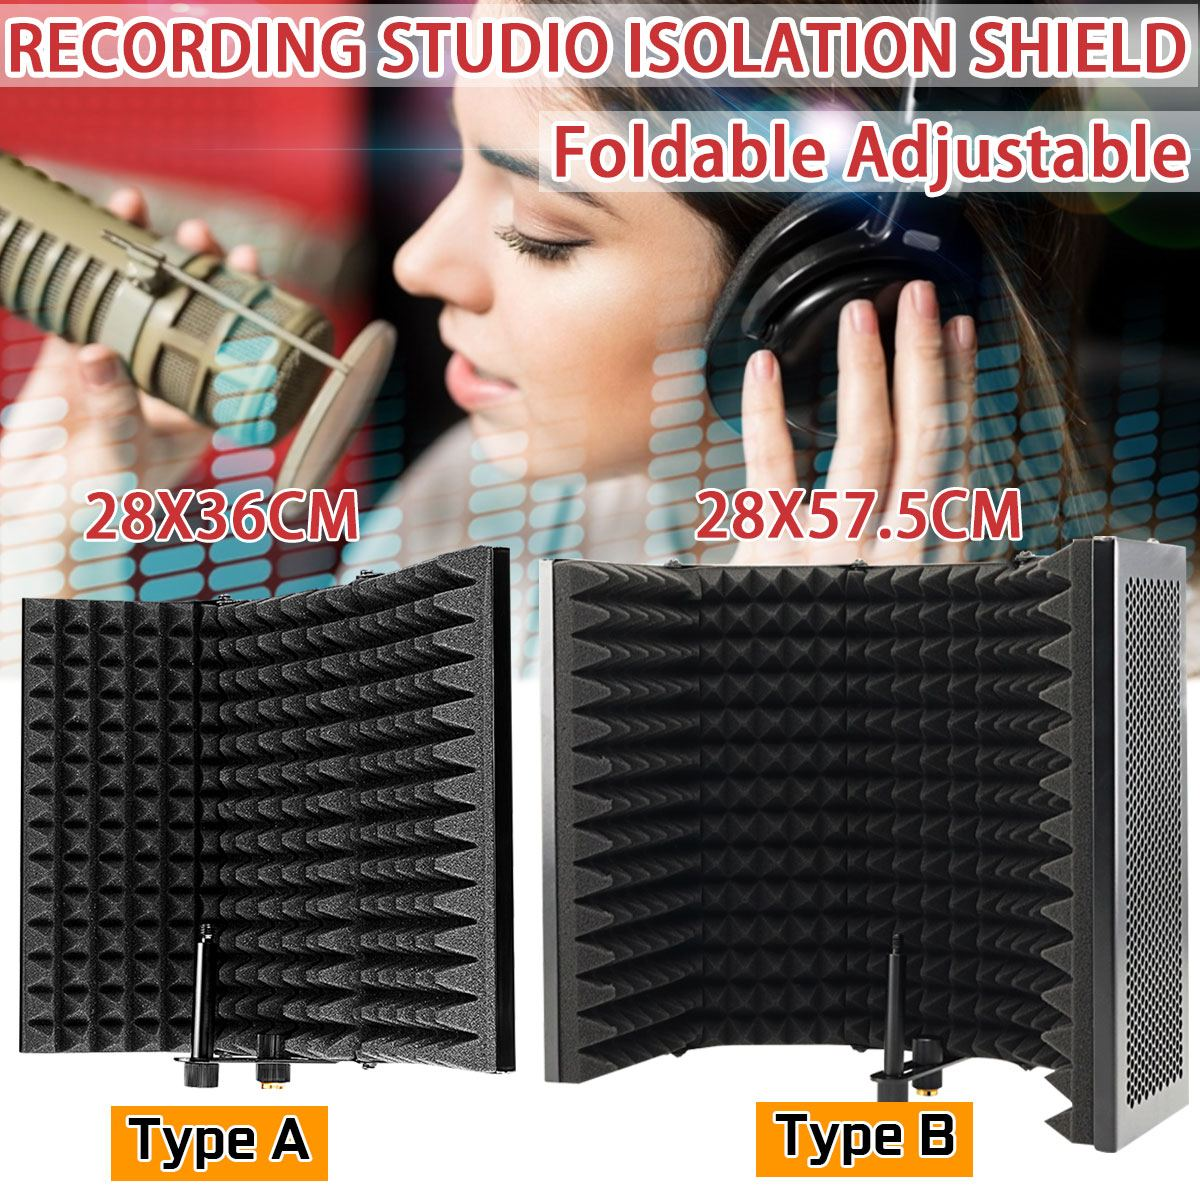 Foldable Microphone Acoustic Isolation Shield Acoustic Foams Panel Studio For Recording Live Broadcast Microphone Accessories 4.